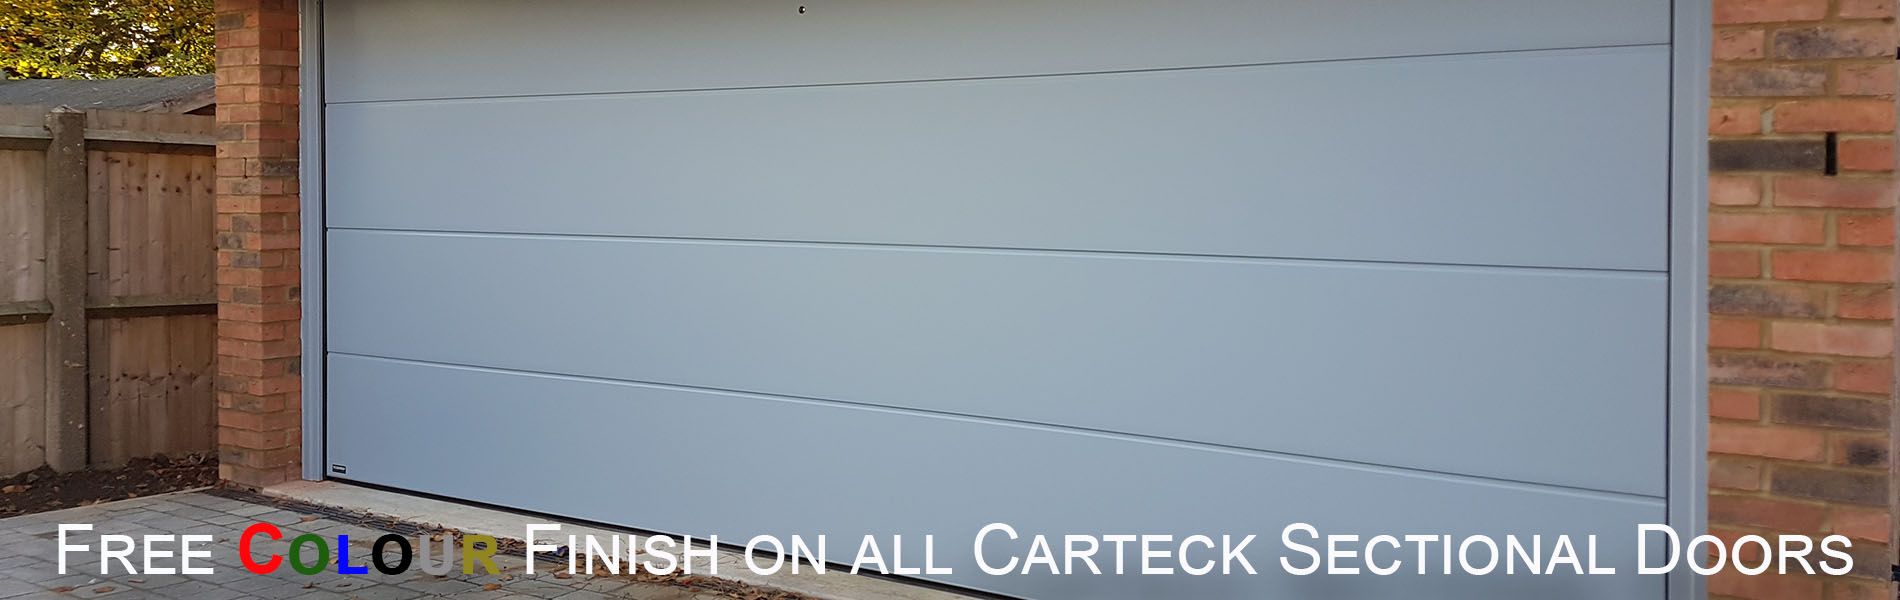 Carteck trend colour sectional door special offer